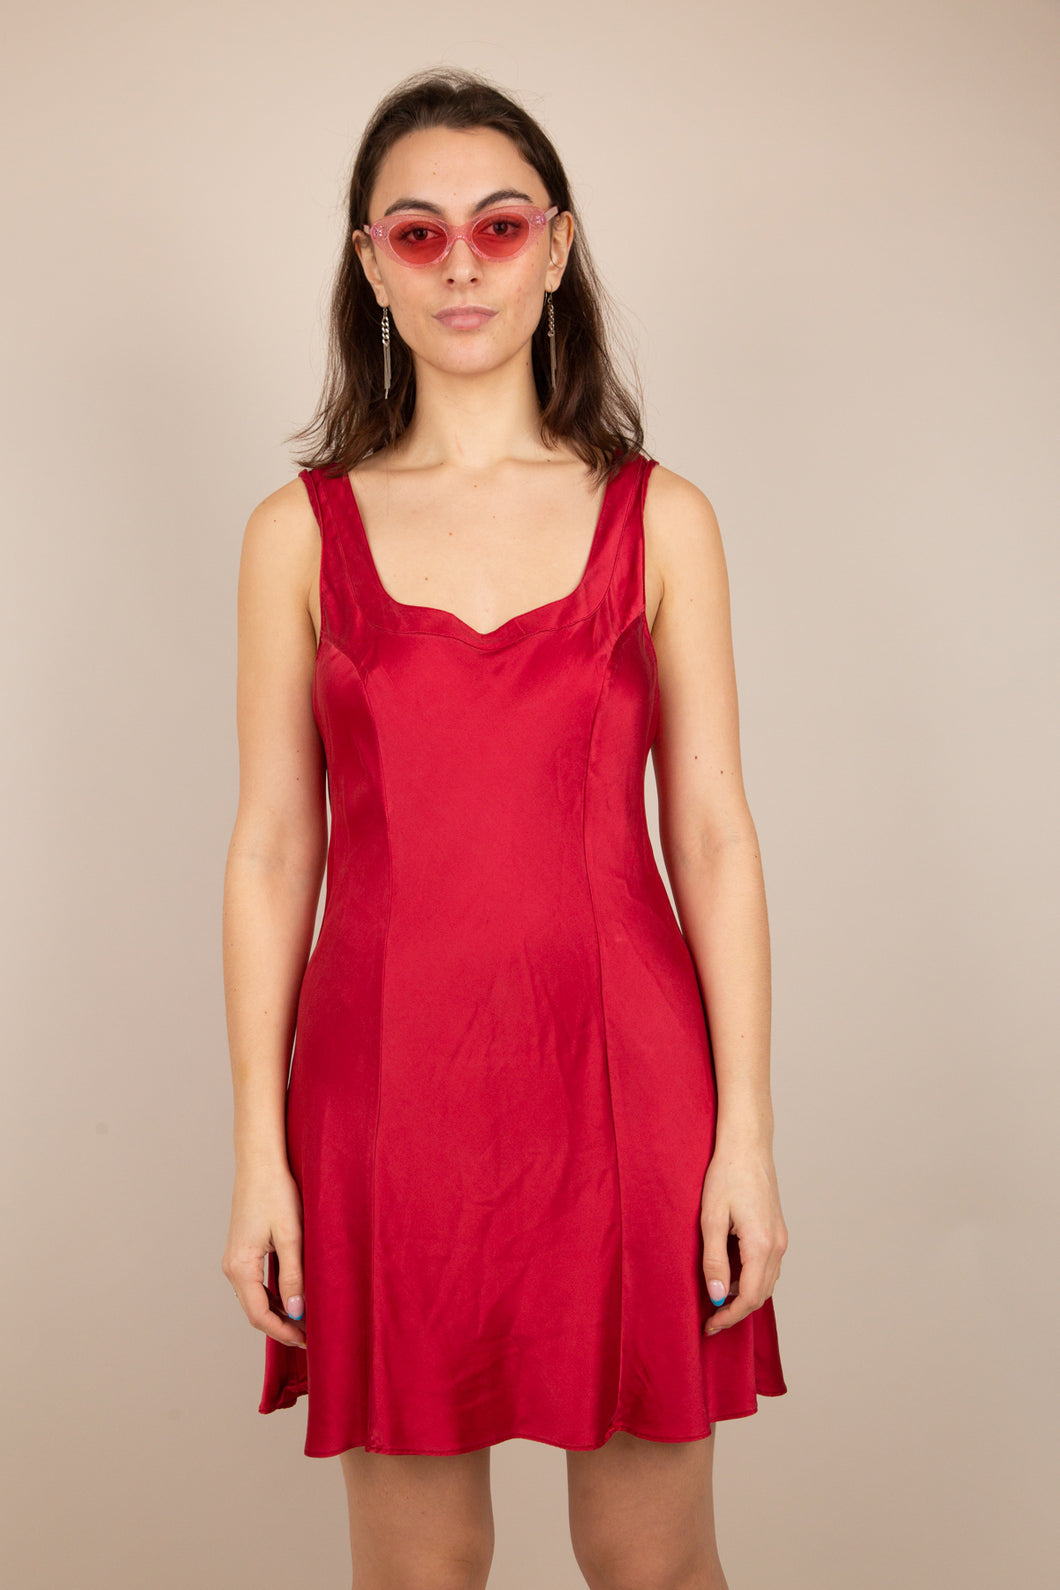 Model is wearing a silk like dress that is mid length. The dress features thick dress straps.